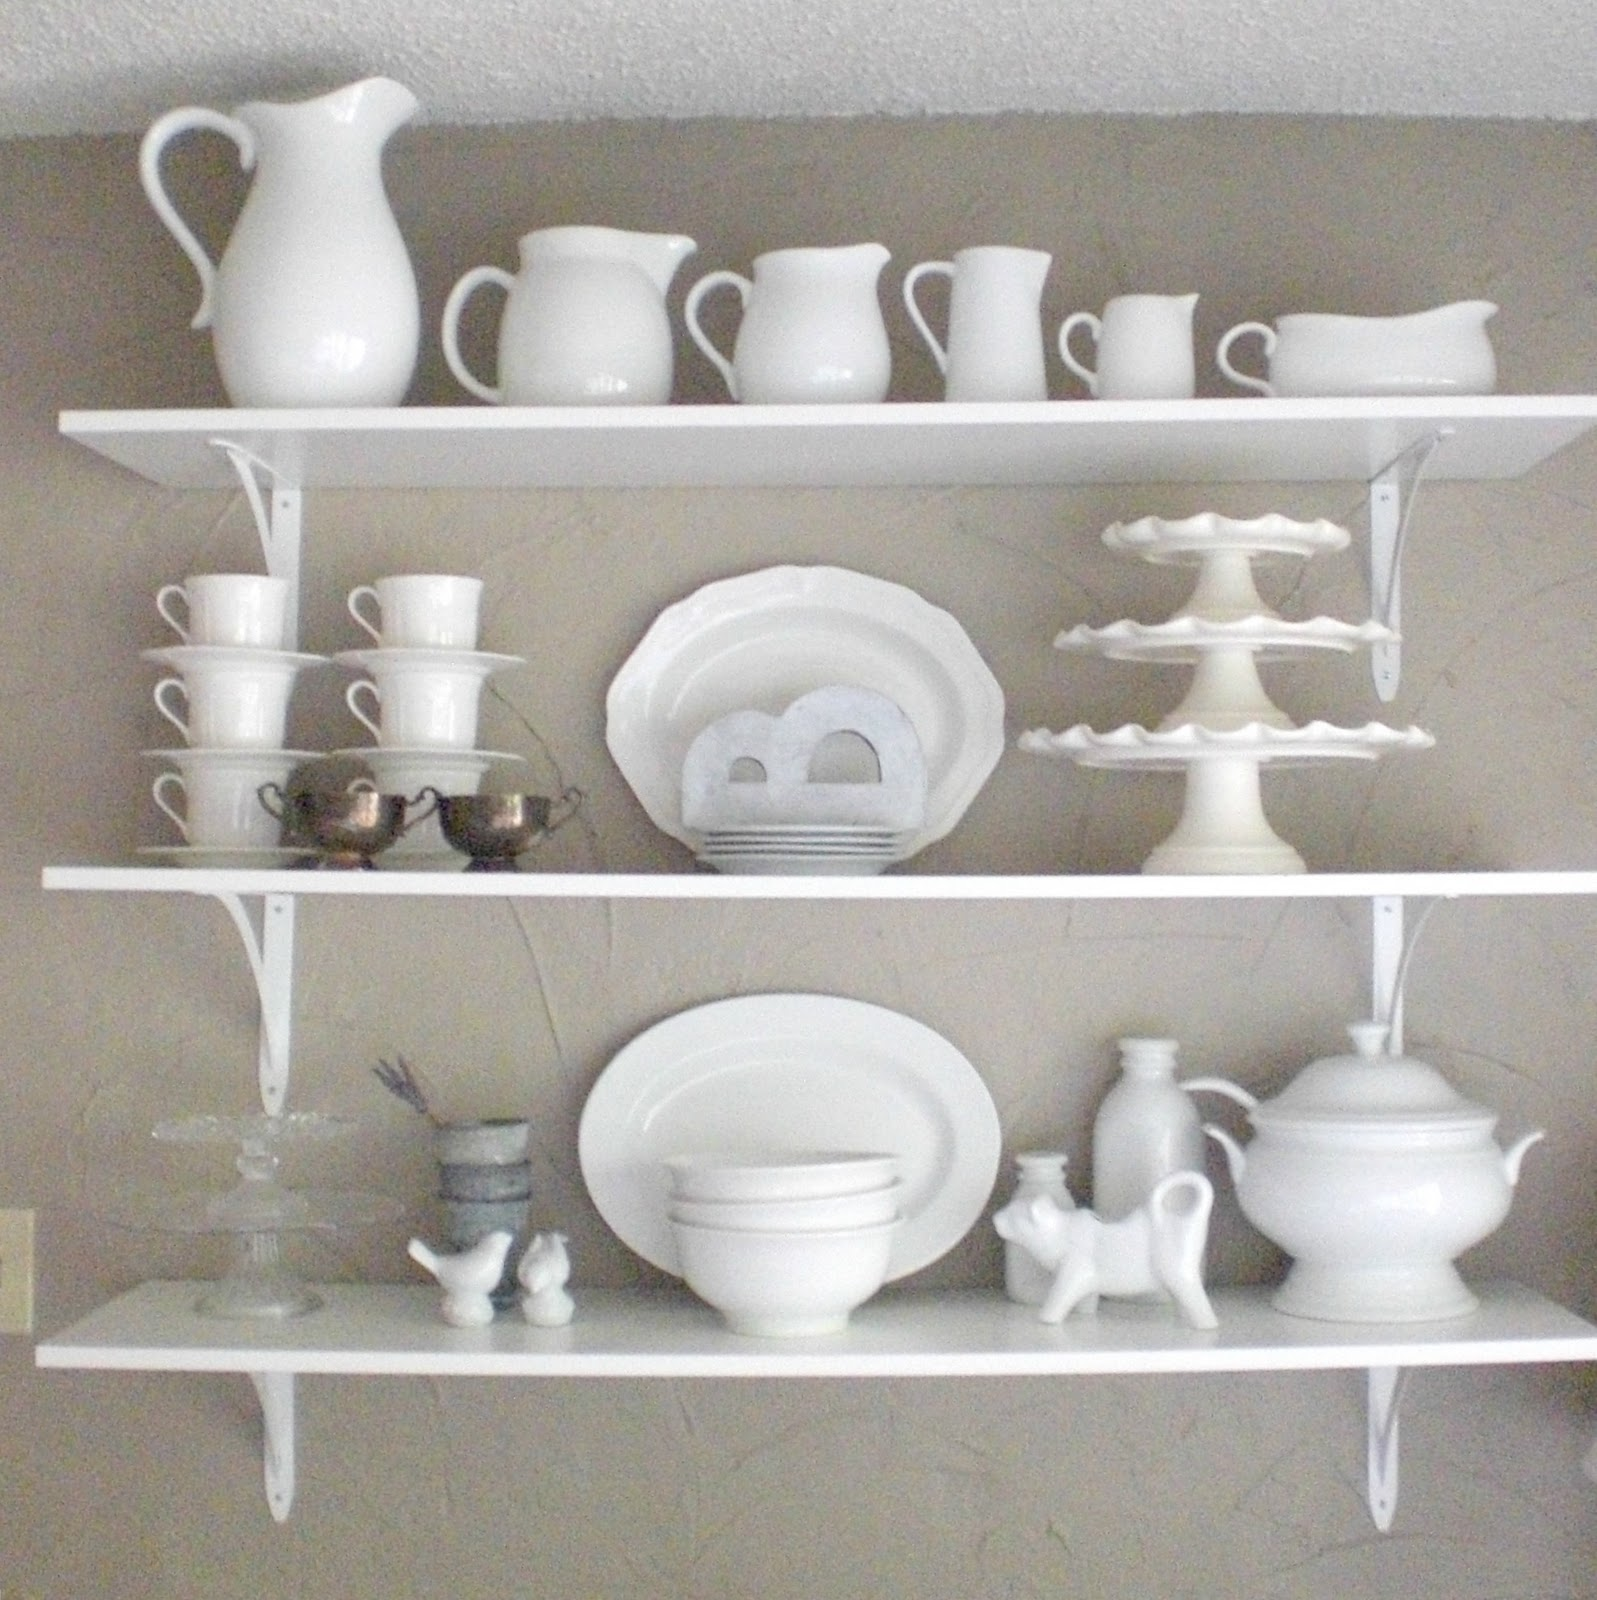 White Kitchen Shelf: 12th And White: Kitchen Shelves